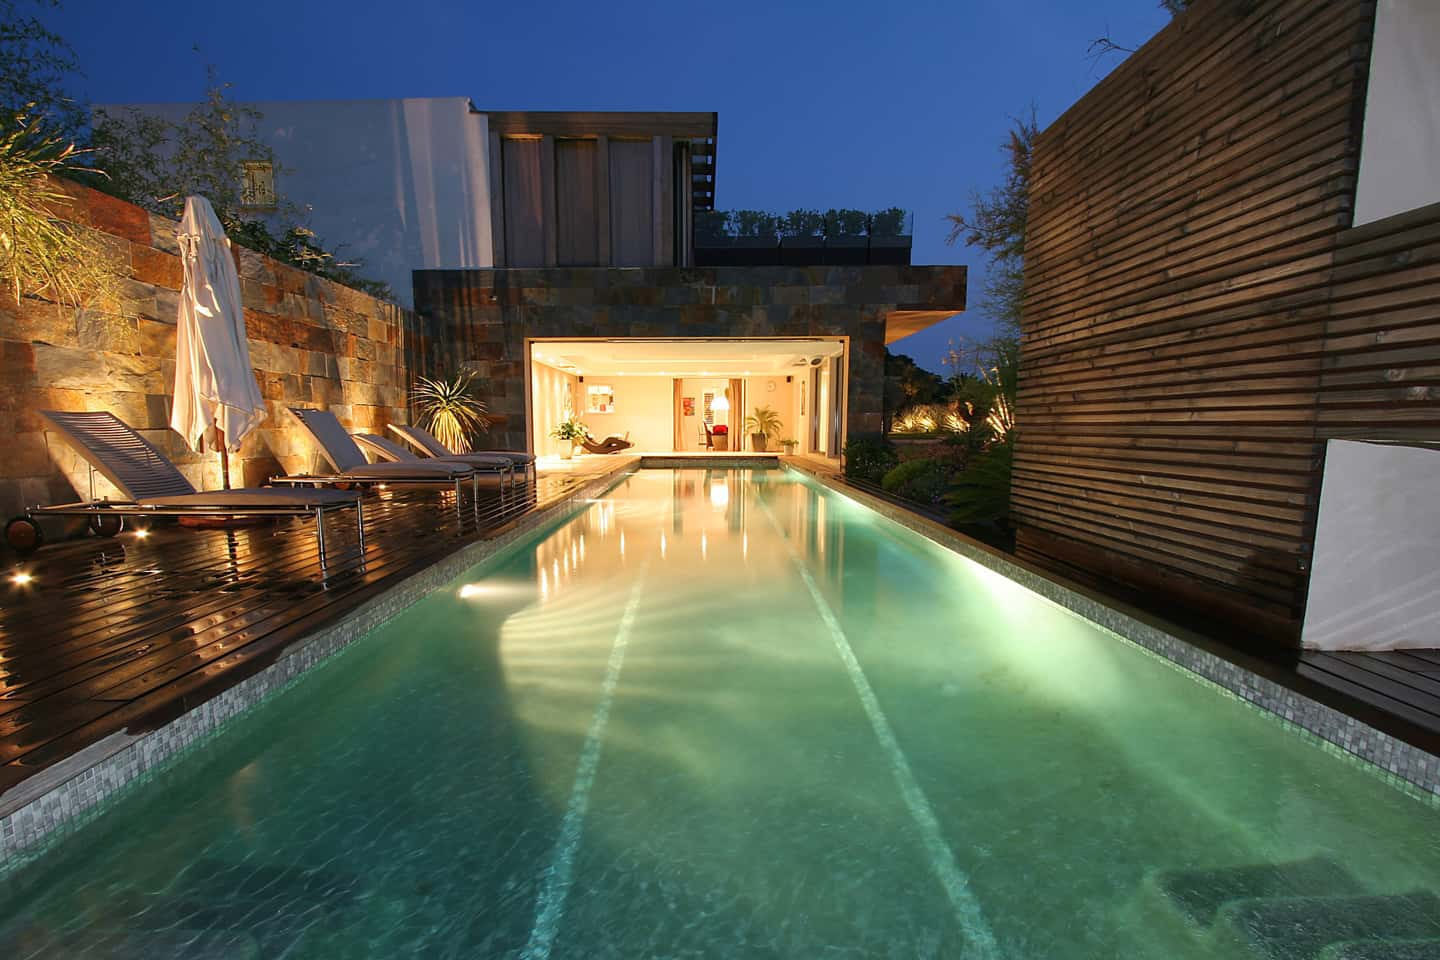 piscine nuit rectangle couloir de nage